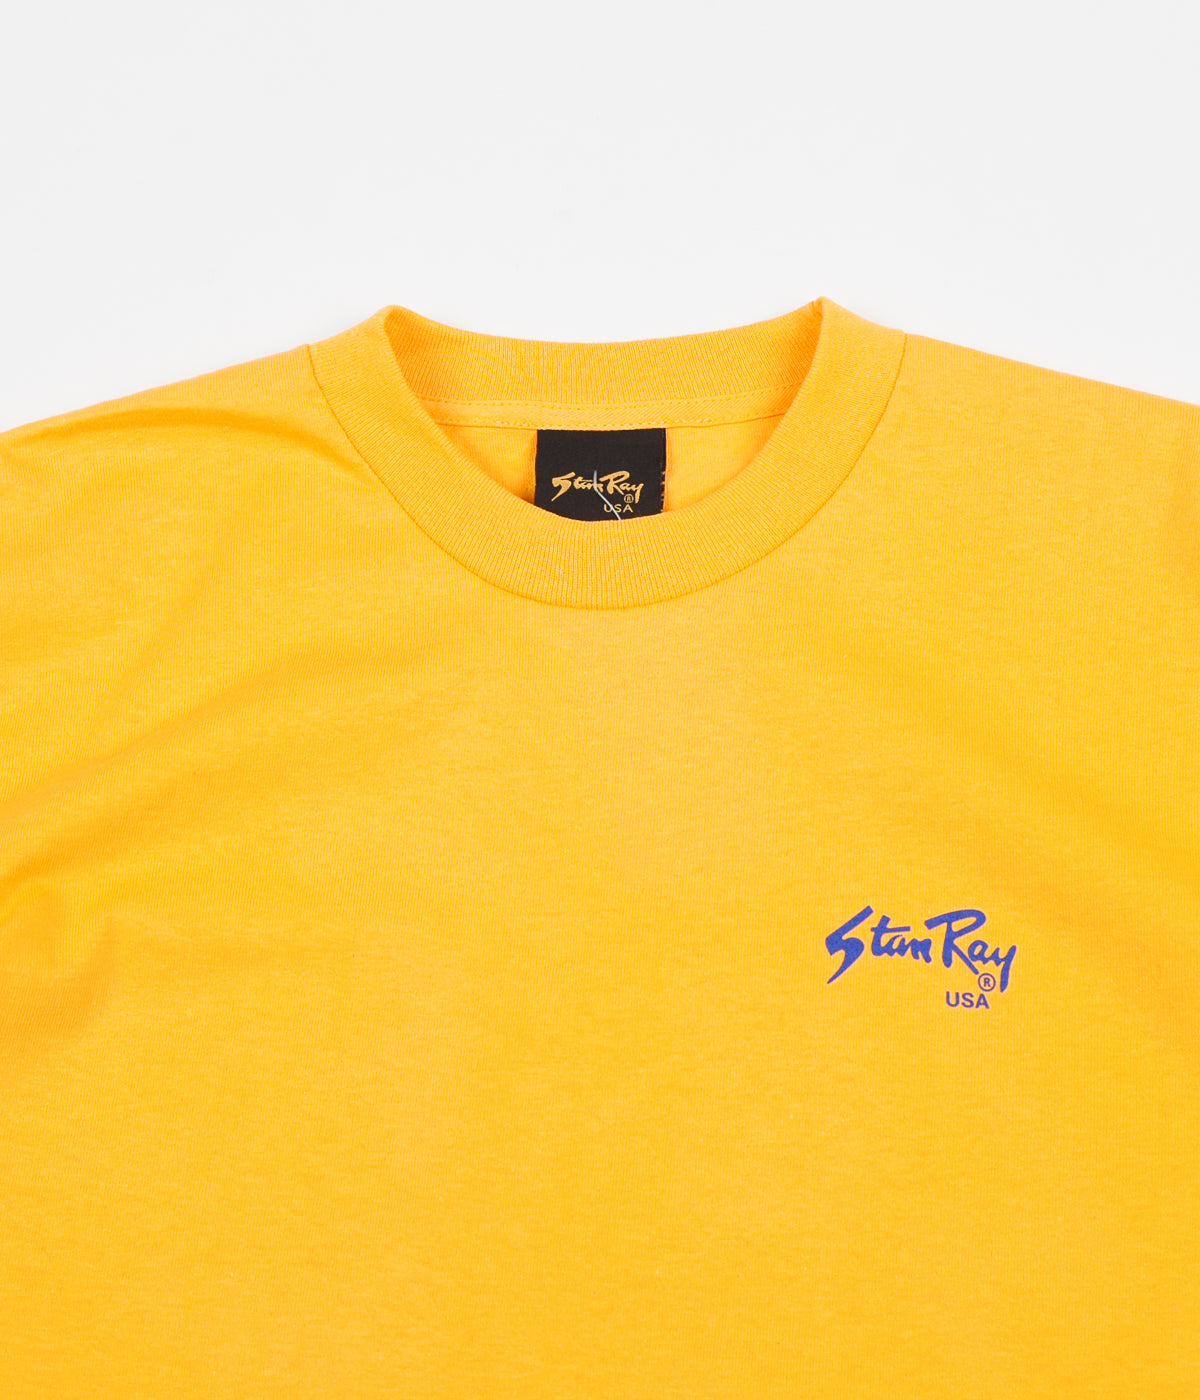 Stan Ray Stan T-Shirt - Book Yellow